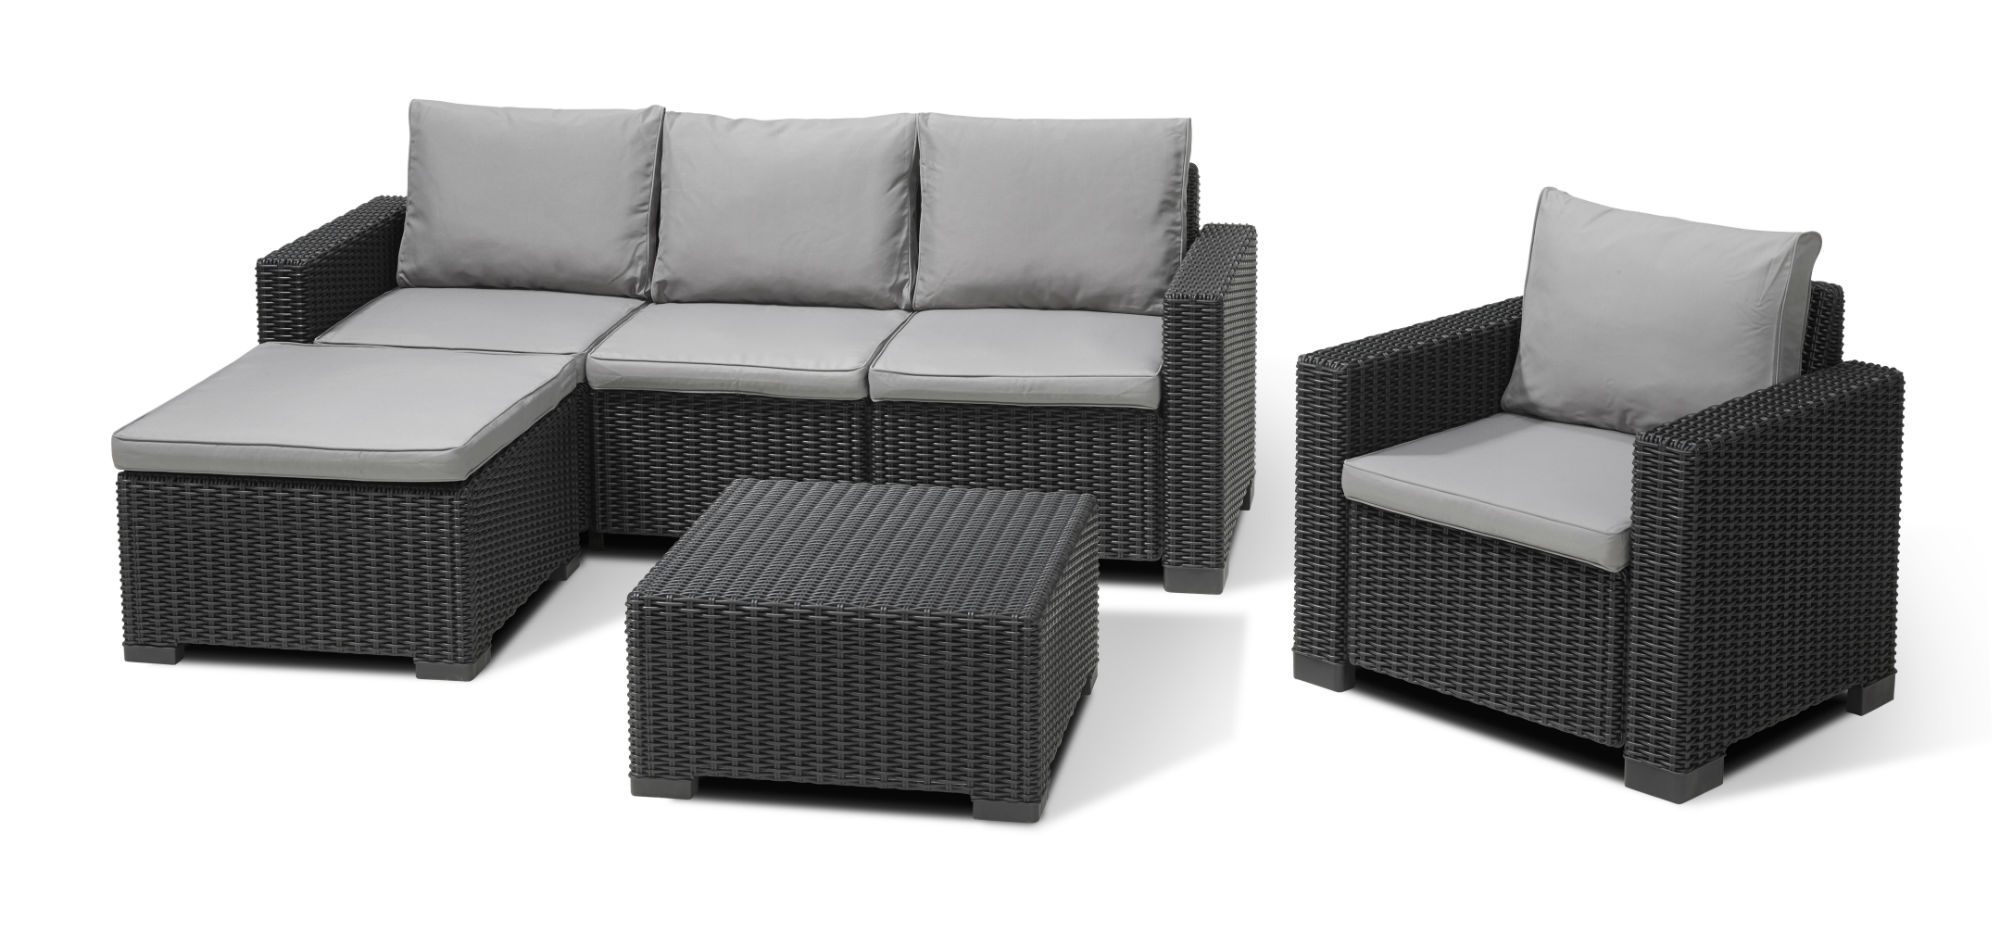 Allibert moorea ensemble de salon graphite allibert for Salon de jardin lounge